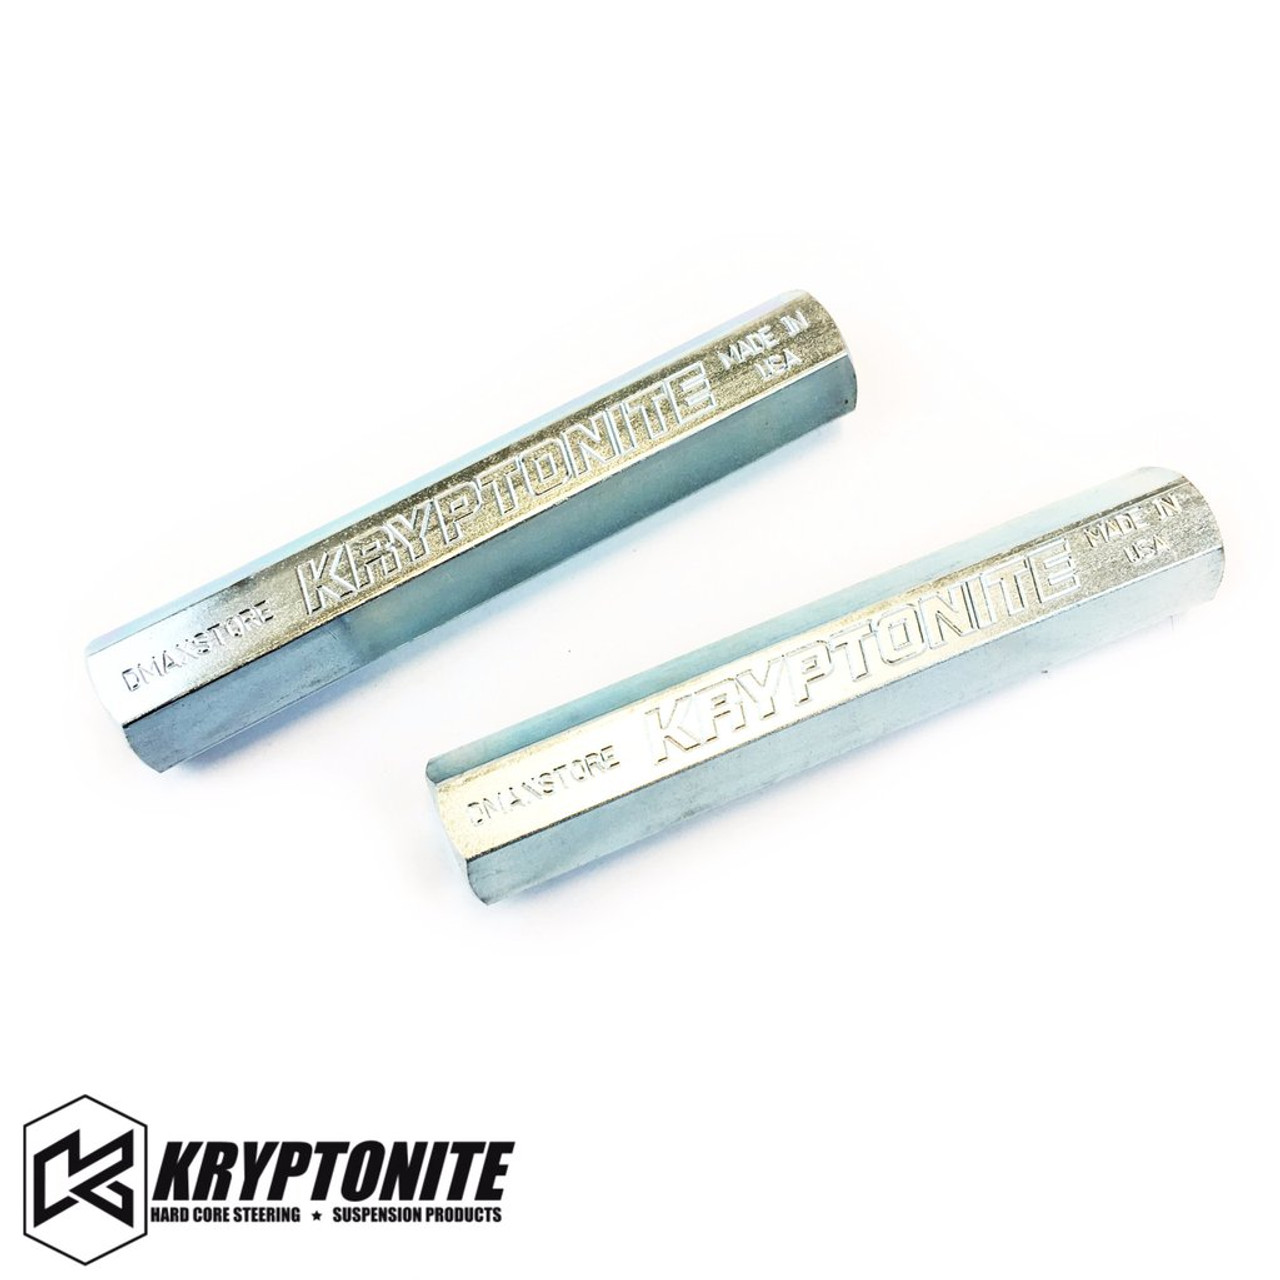 KRYPTONITE SOLID STEEL TIE ROD SLEEVES ZINC PLATED 2011+